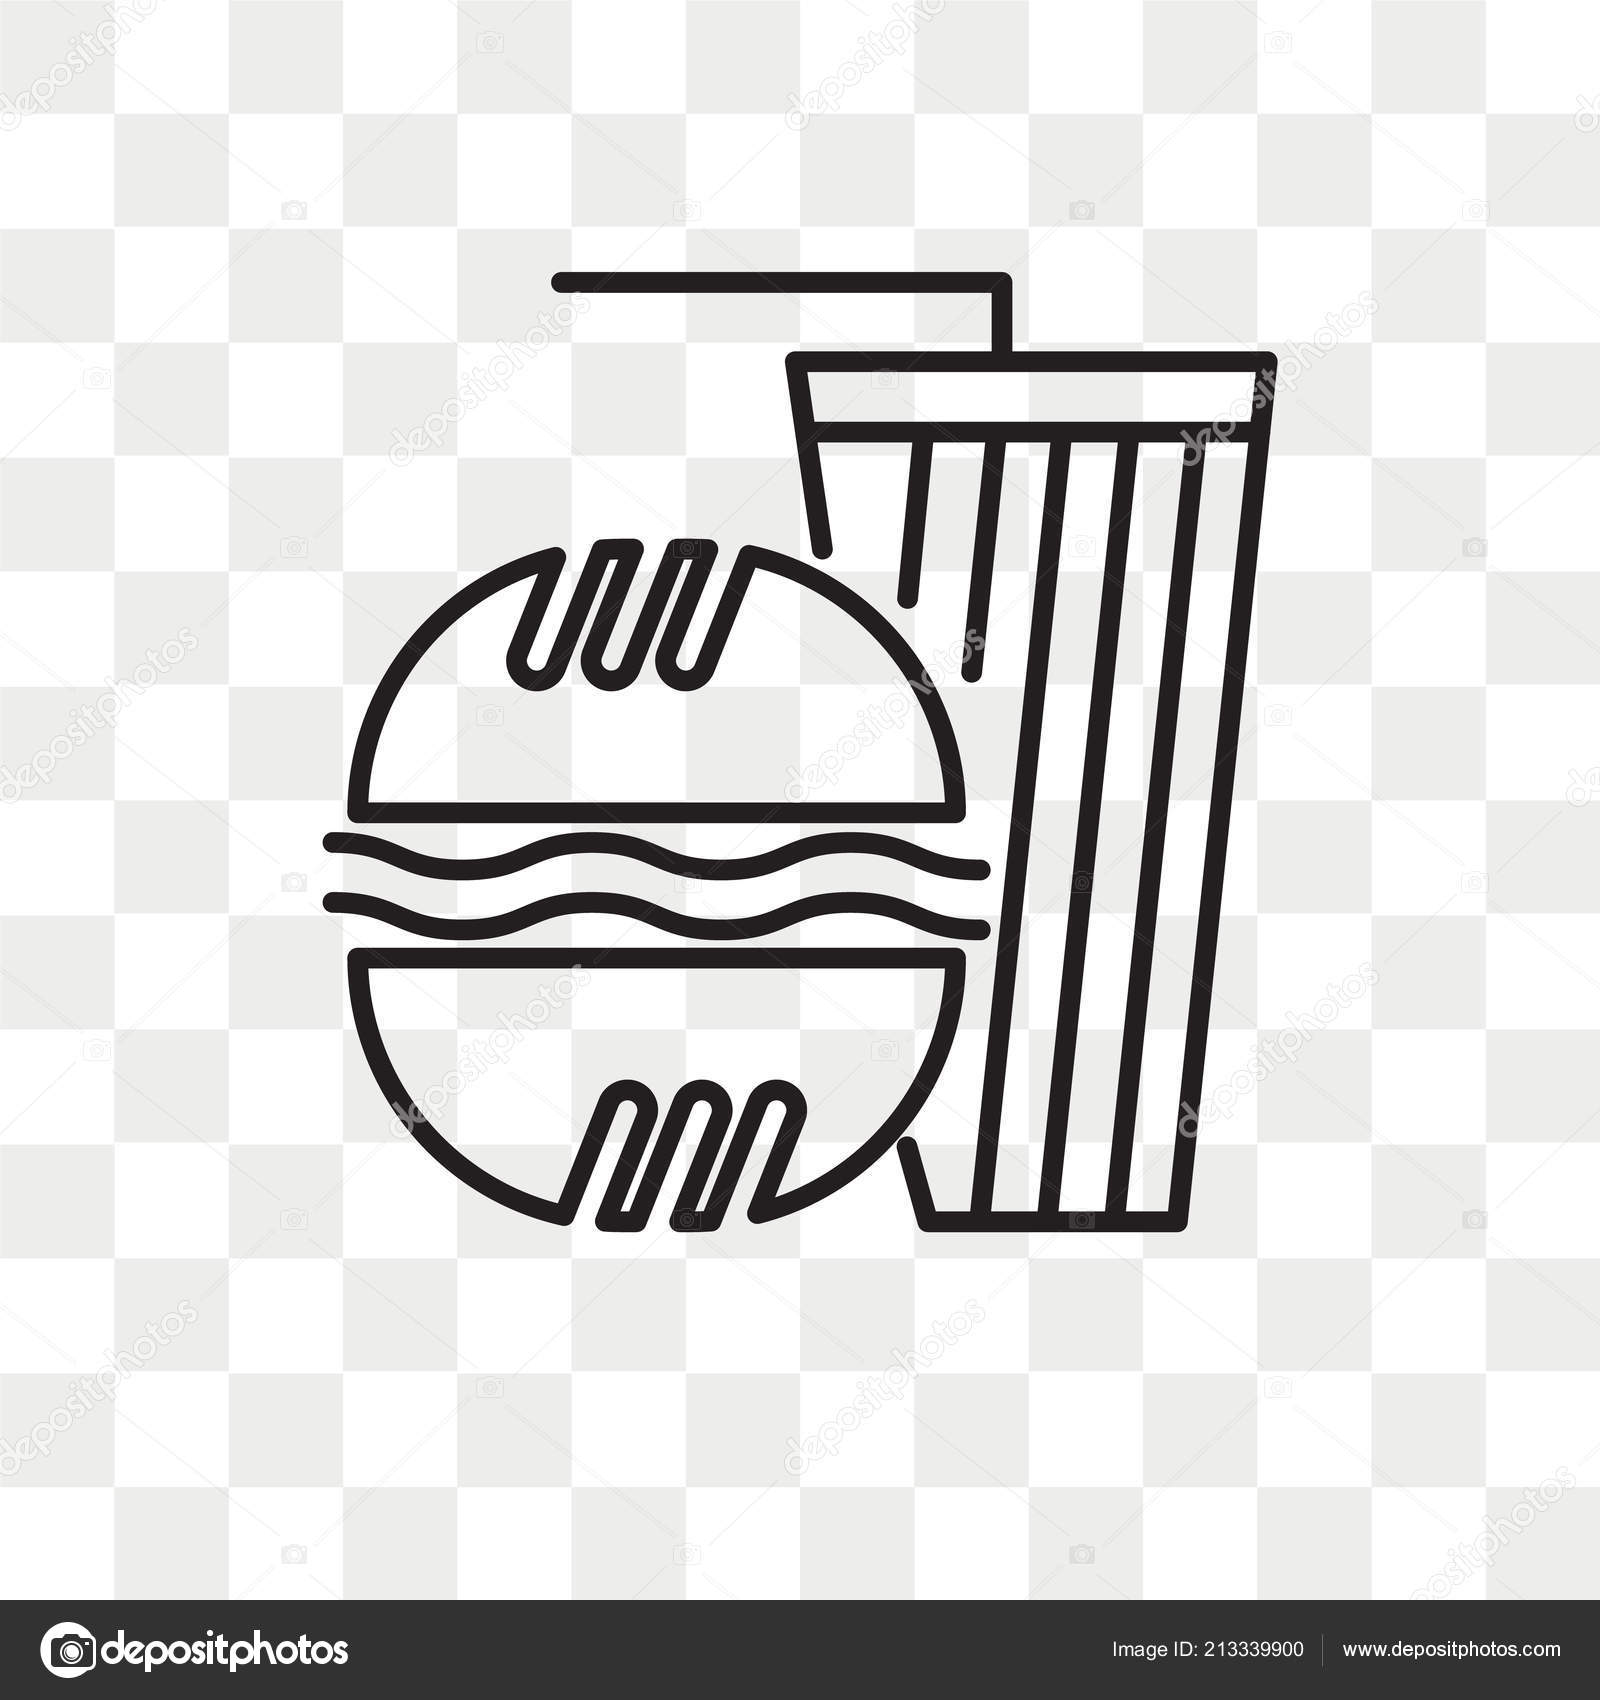 Fast food vector icon isolated on transparent background